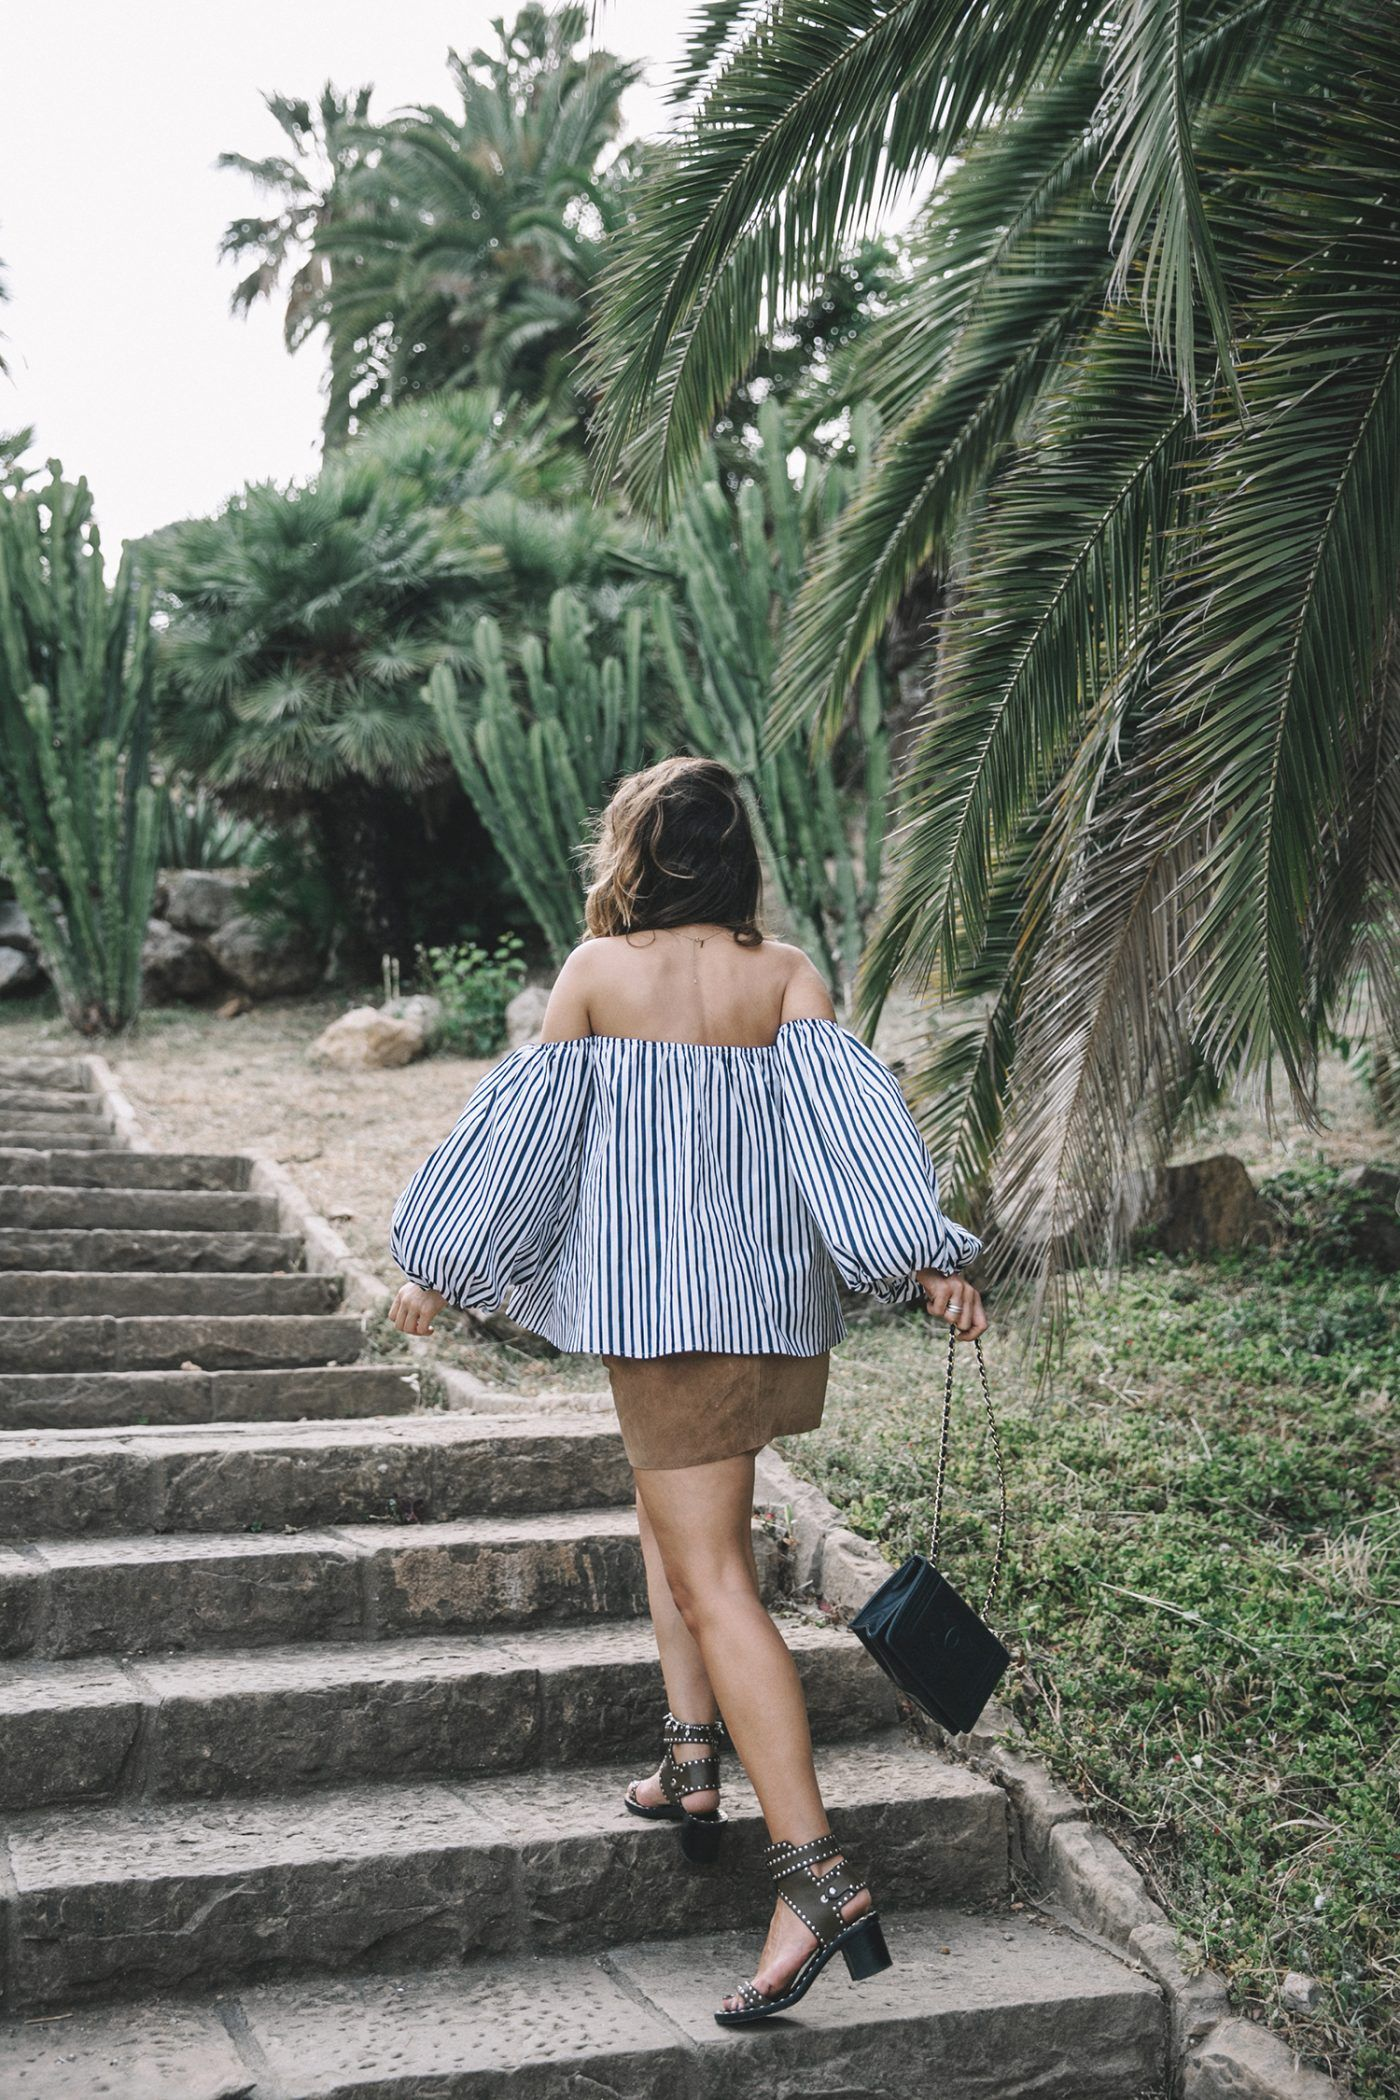 Chicwish-Off_The_Shoulders_Top-Outfit-Suede_Skirt-Free_People-Isabel_marant_Sandals-Chanel_Vintage_Bag-Statement_Earrings-Boho-Collage_Vintage-26